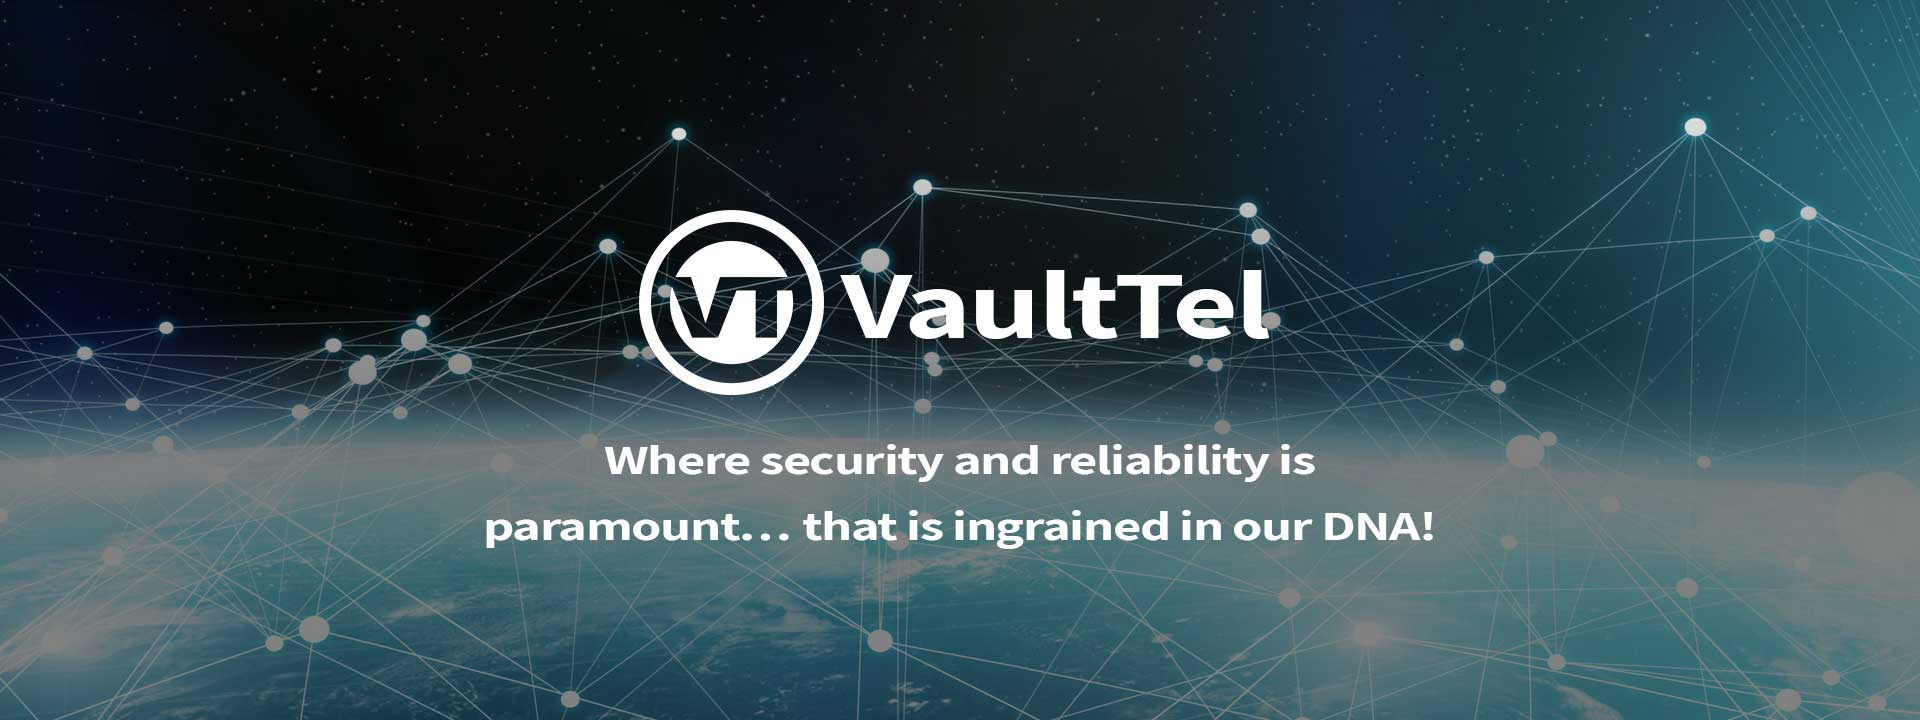 VaultTel | Where security and reliability is paramount... that is ingrained in our DNA!